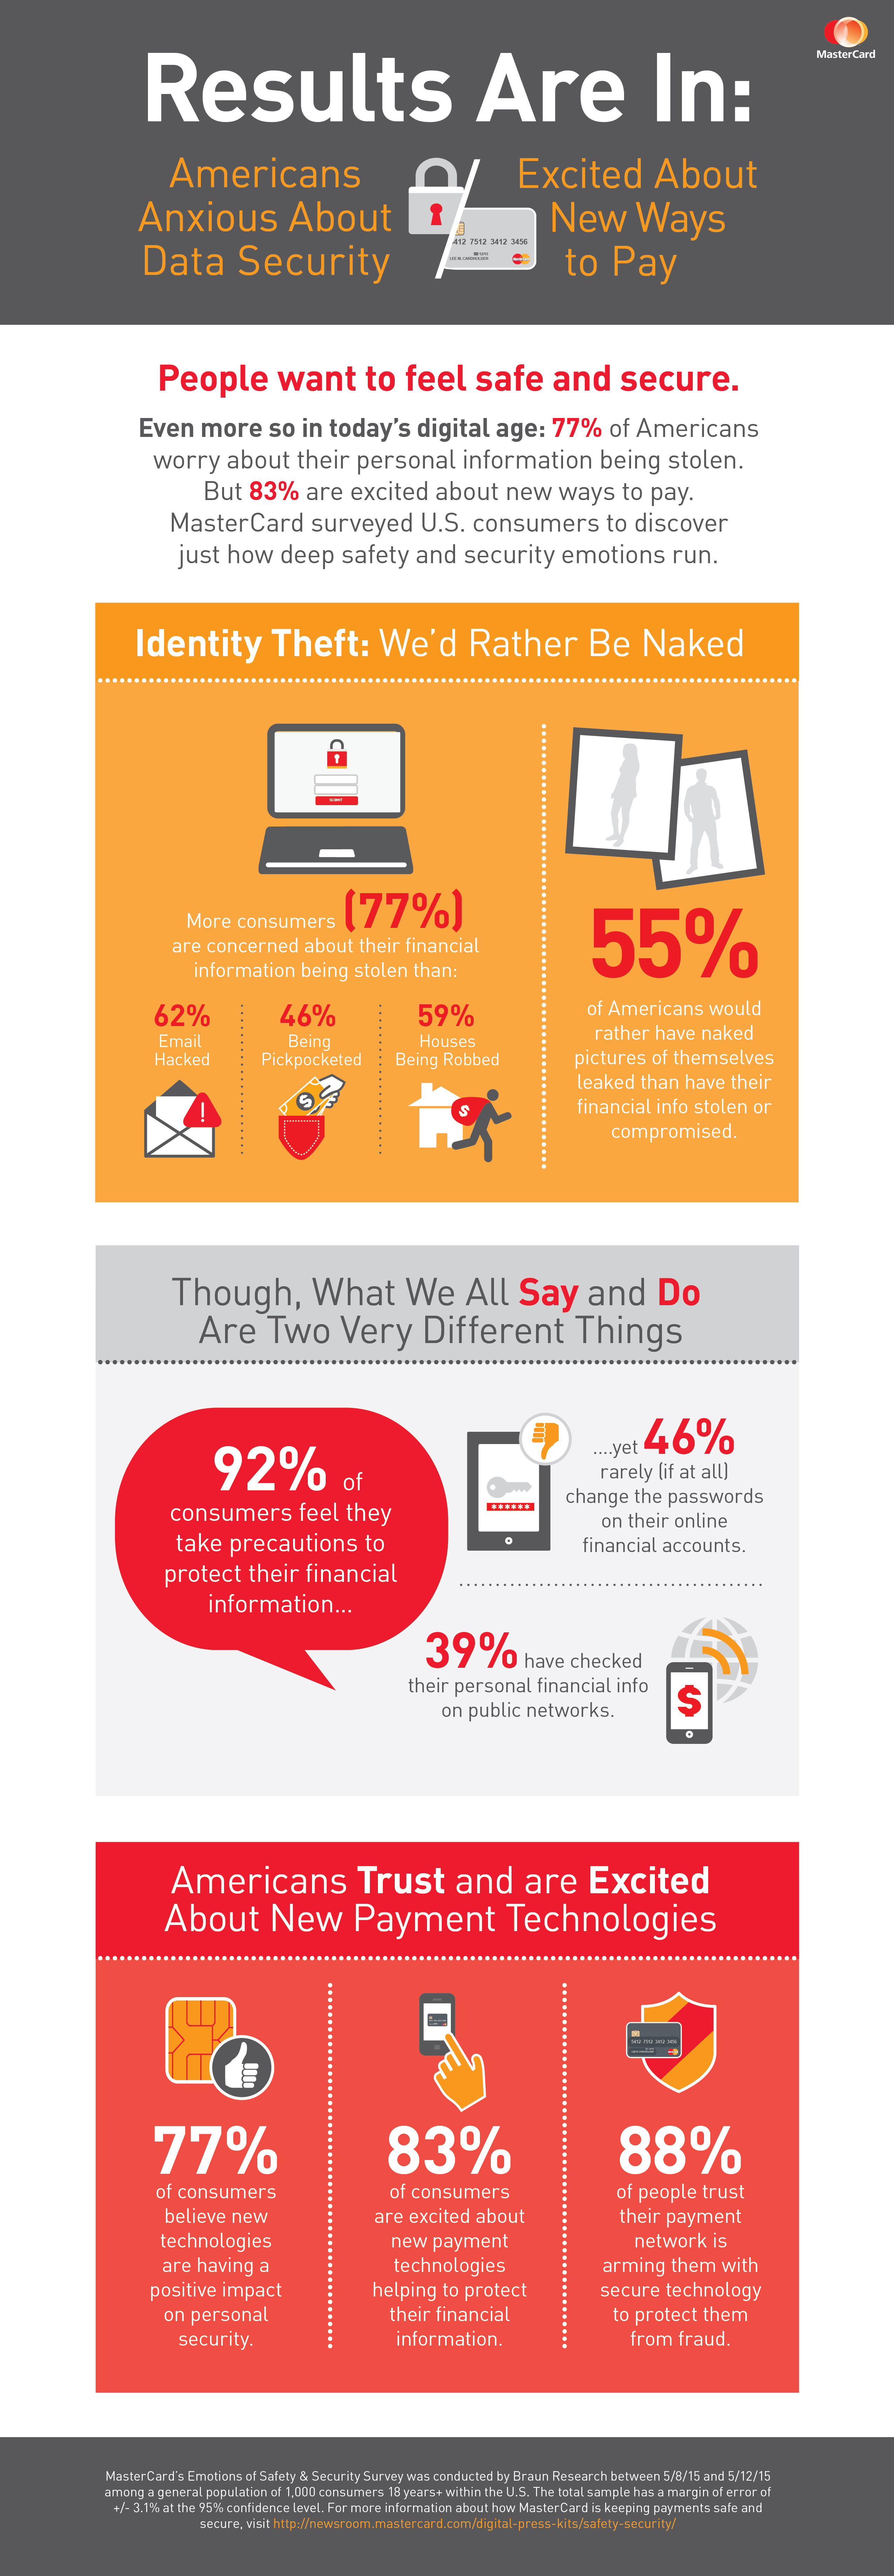 Infographic: MasterCard Survey Reveals Americans Trust and are Excited about New Payment Tech MasterCard conducted a survey to delve into the emotions behind payments.  The results: Americans are anxious about data security but are excited about new ways to pay. People want to feel safe and secure. For a full view into the survey findings, please read full press release: http://mstr.cd/1JUto0O  (Graphic: Business Wire)